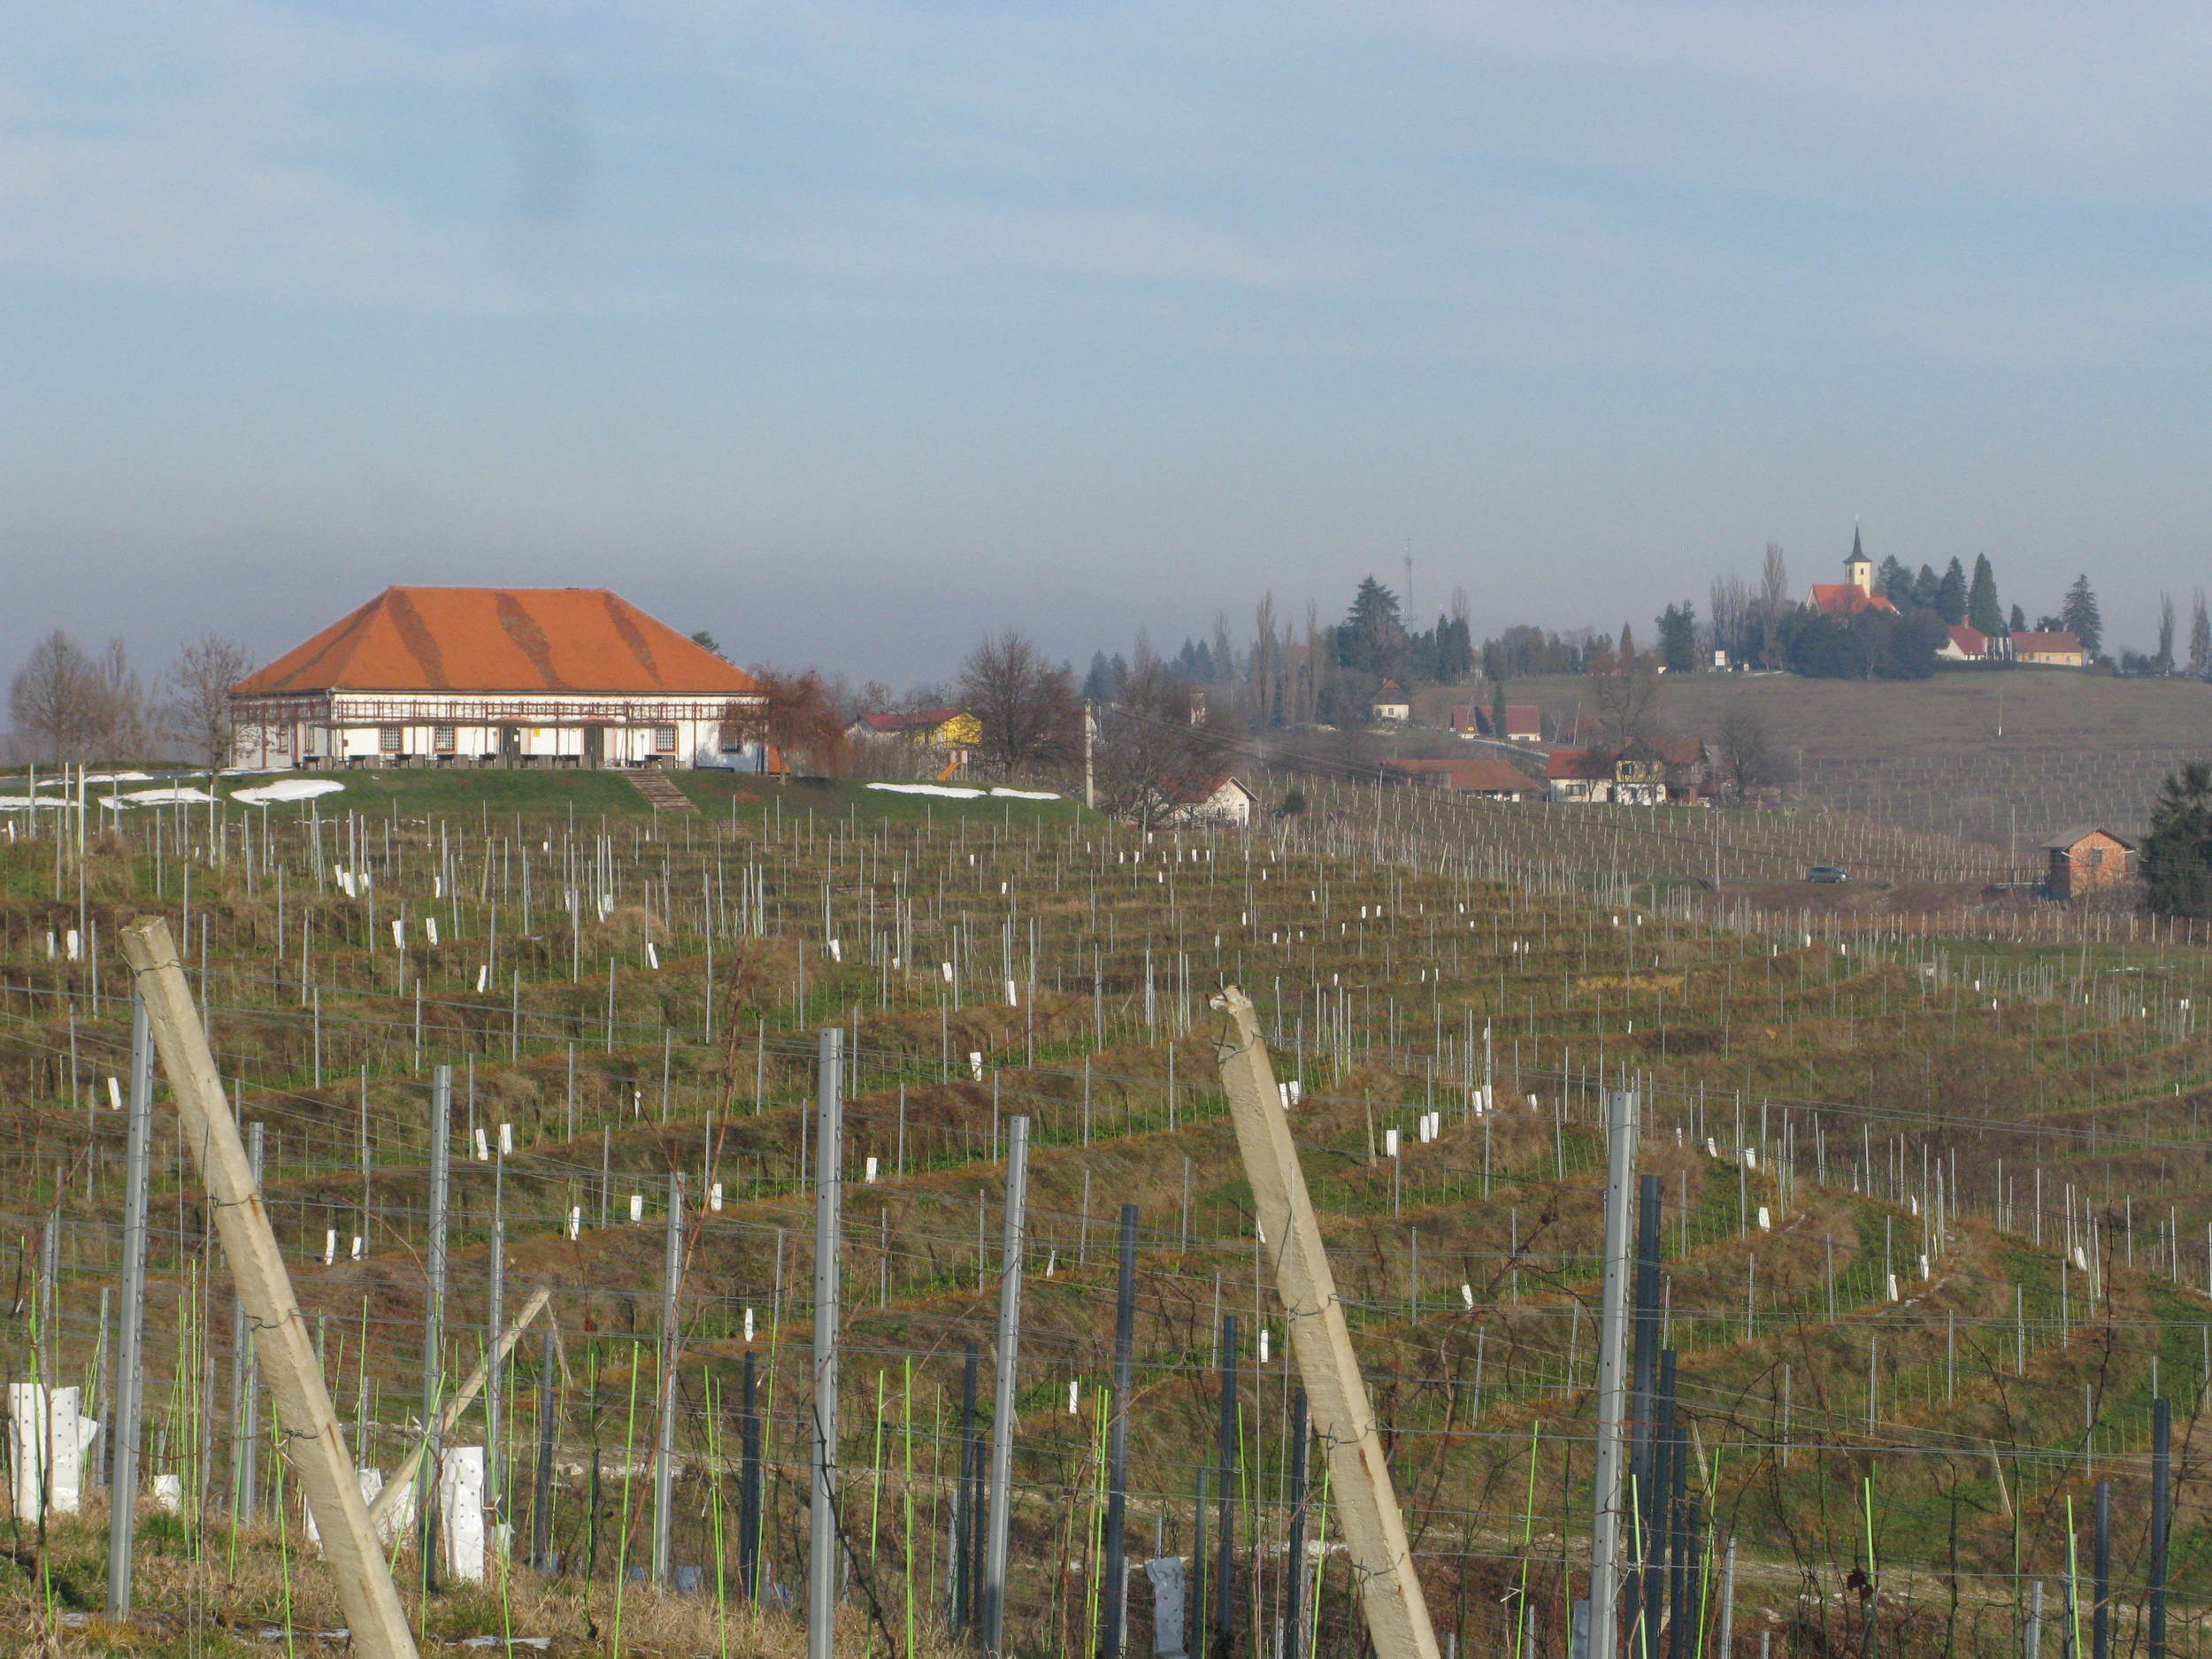 One of the venues for our wine tastings